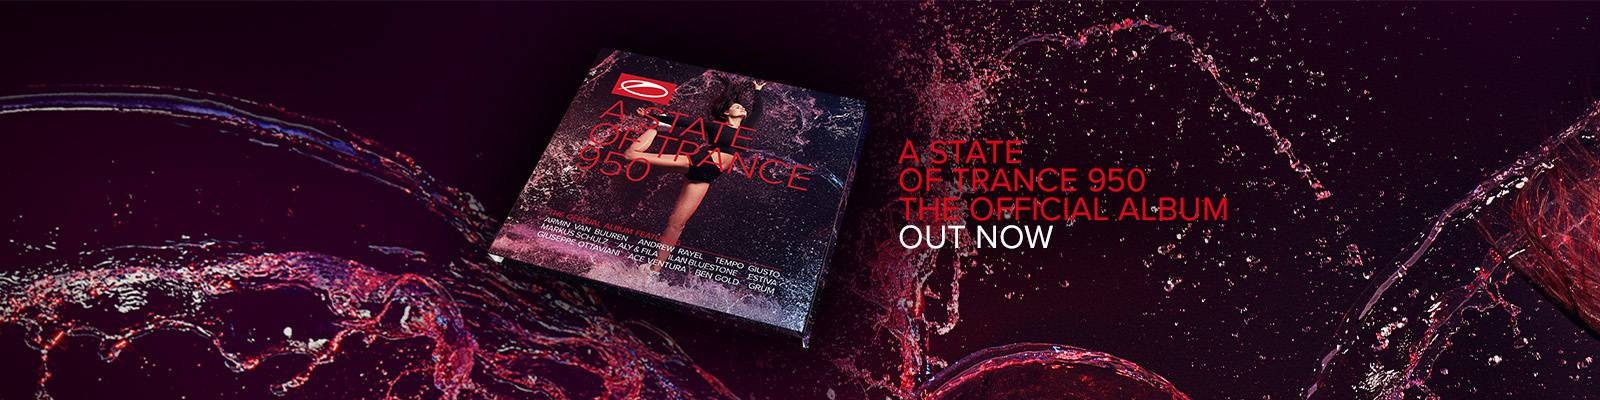 Out Now: A State Of Trance 950 (The Official Album)